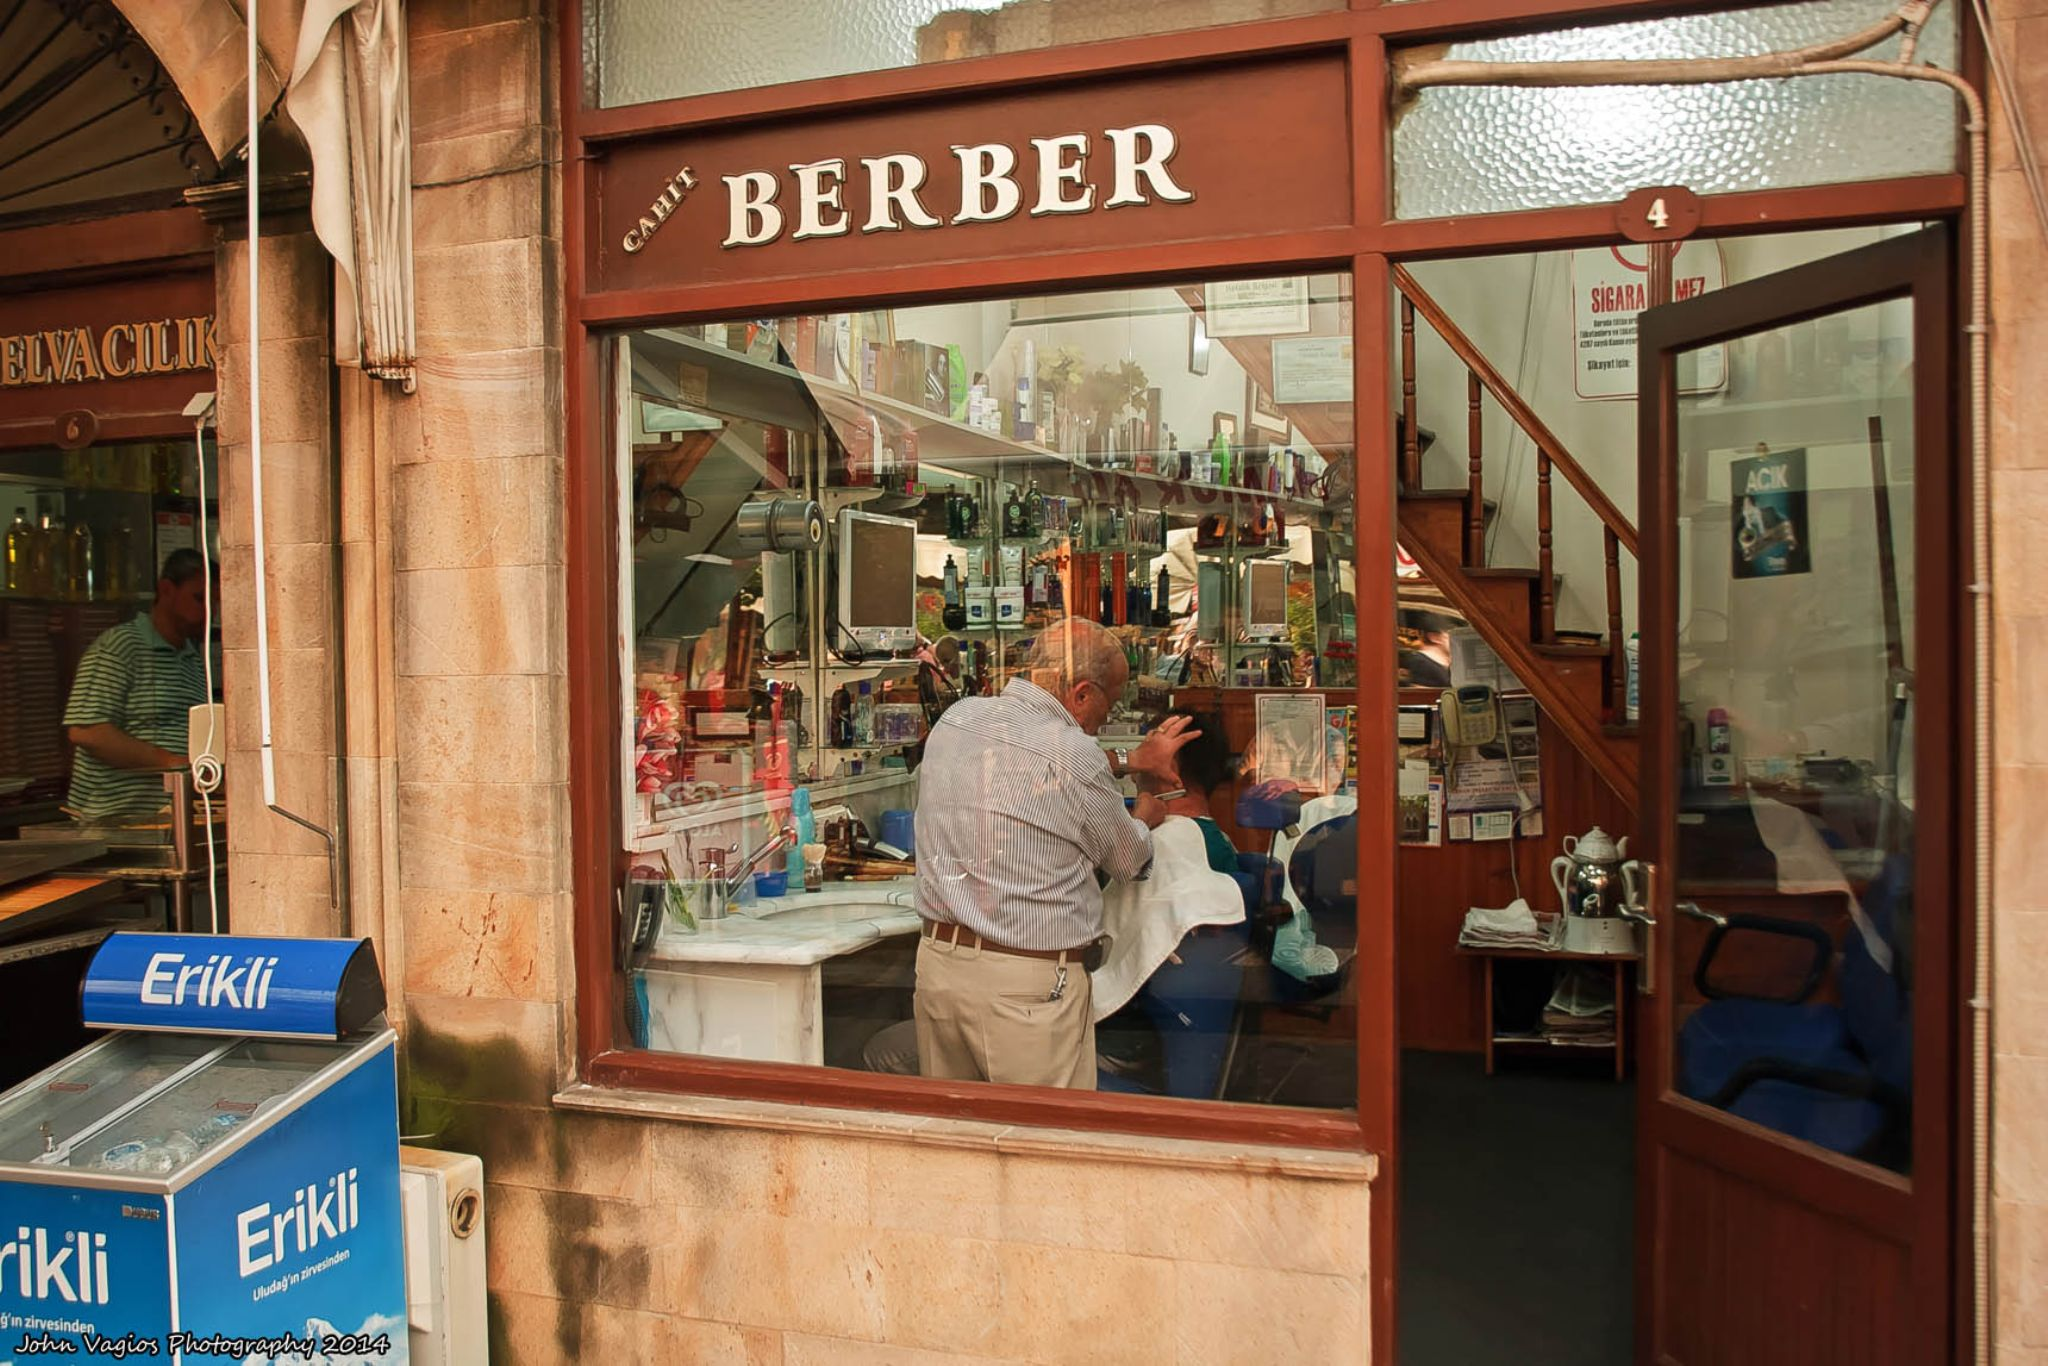 Barber by JohnVagios